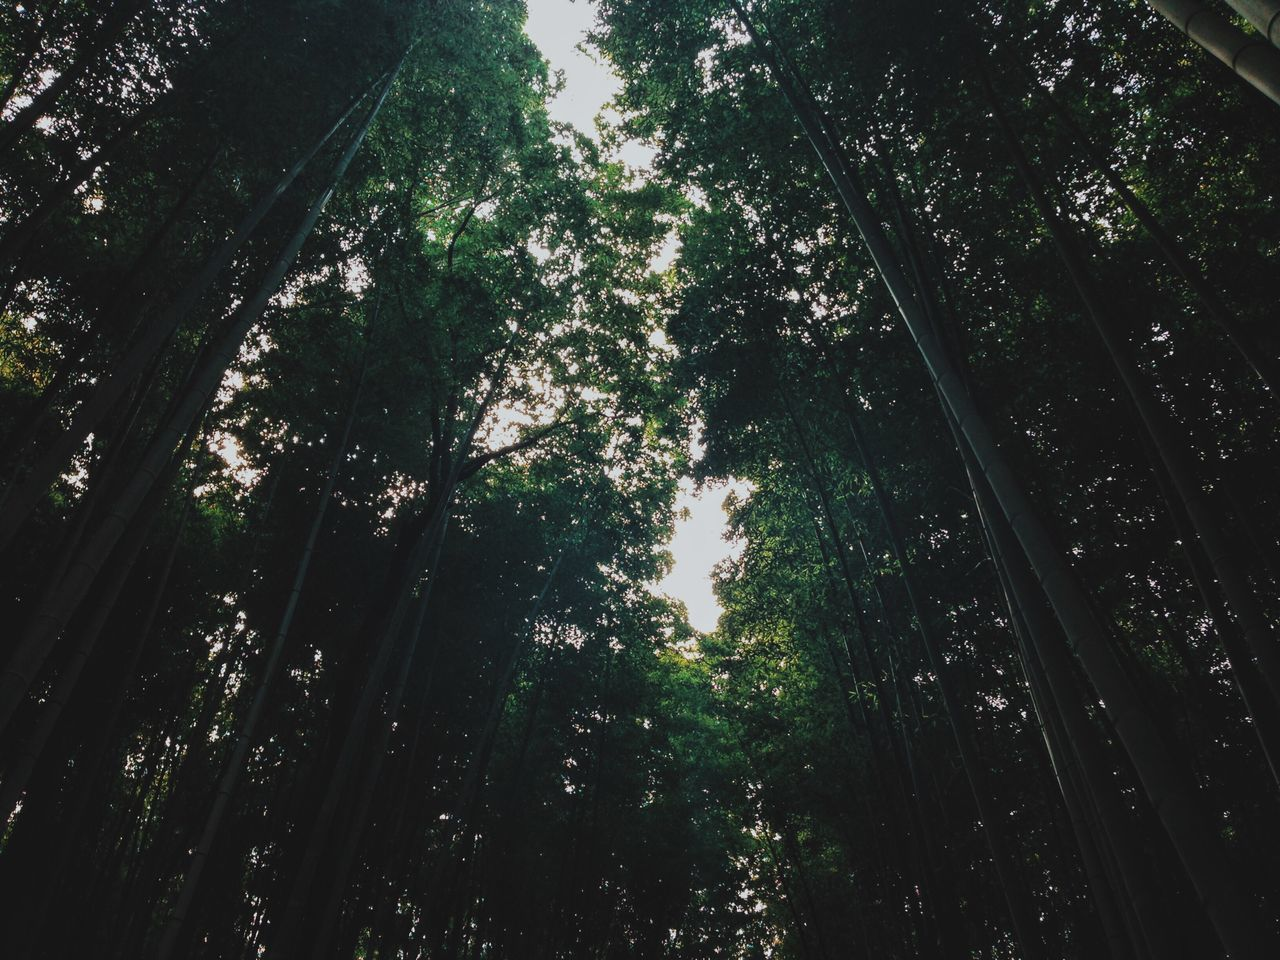 tree, nature, growth, tranquility, forest, beauty in nature, low angle view, tranquil scene, no people, outdoors, scenics, day, bamboo - plant, branch, sky